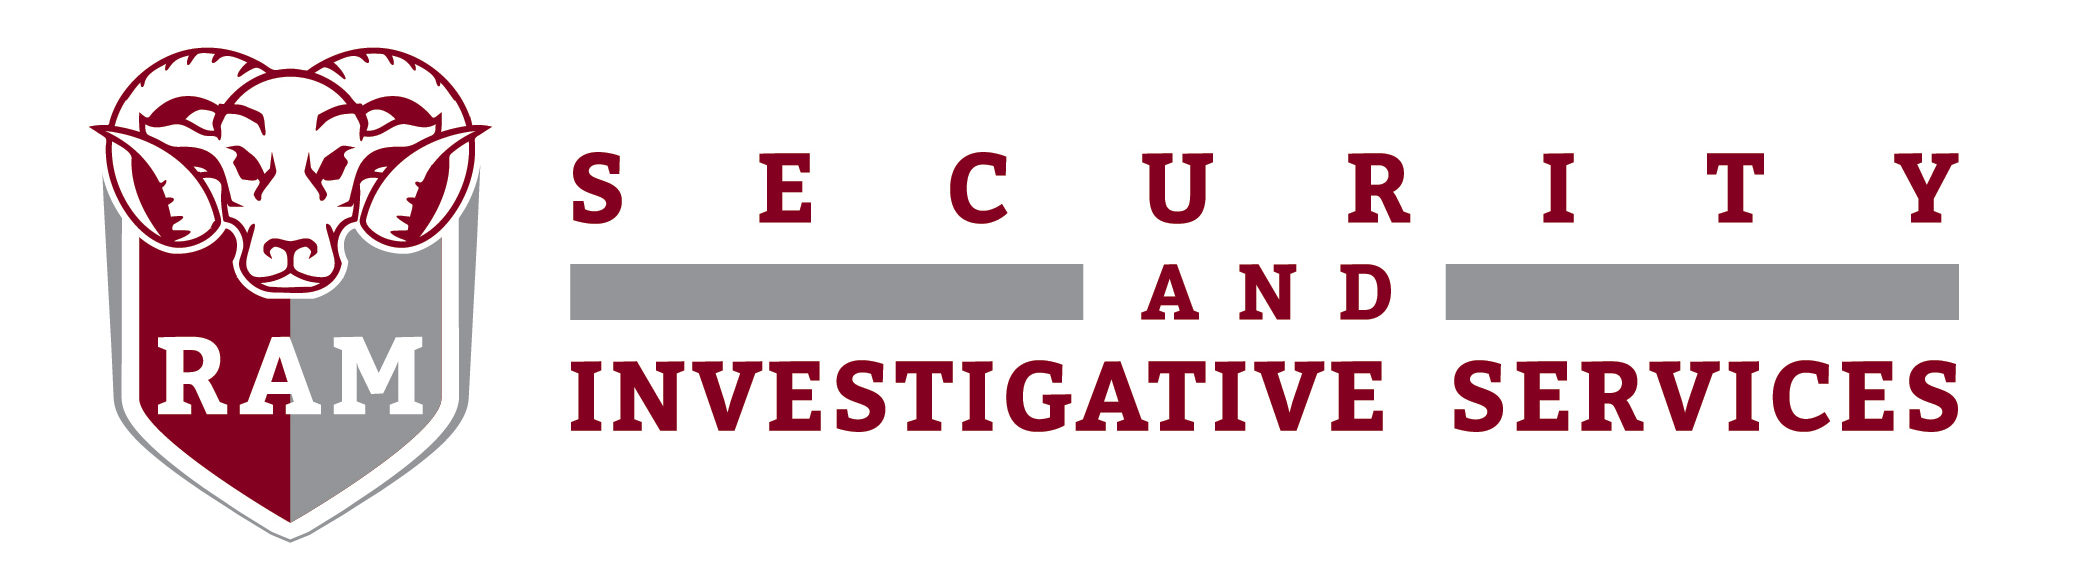 Ram Security and Investigative Services